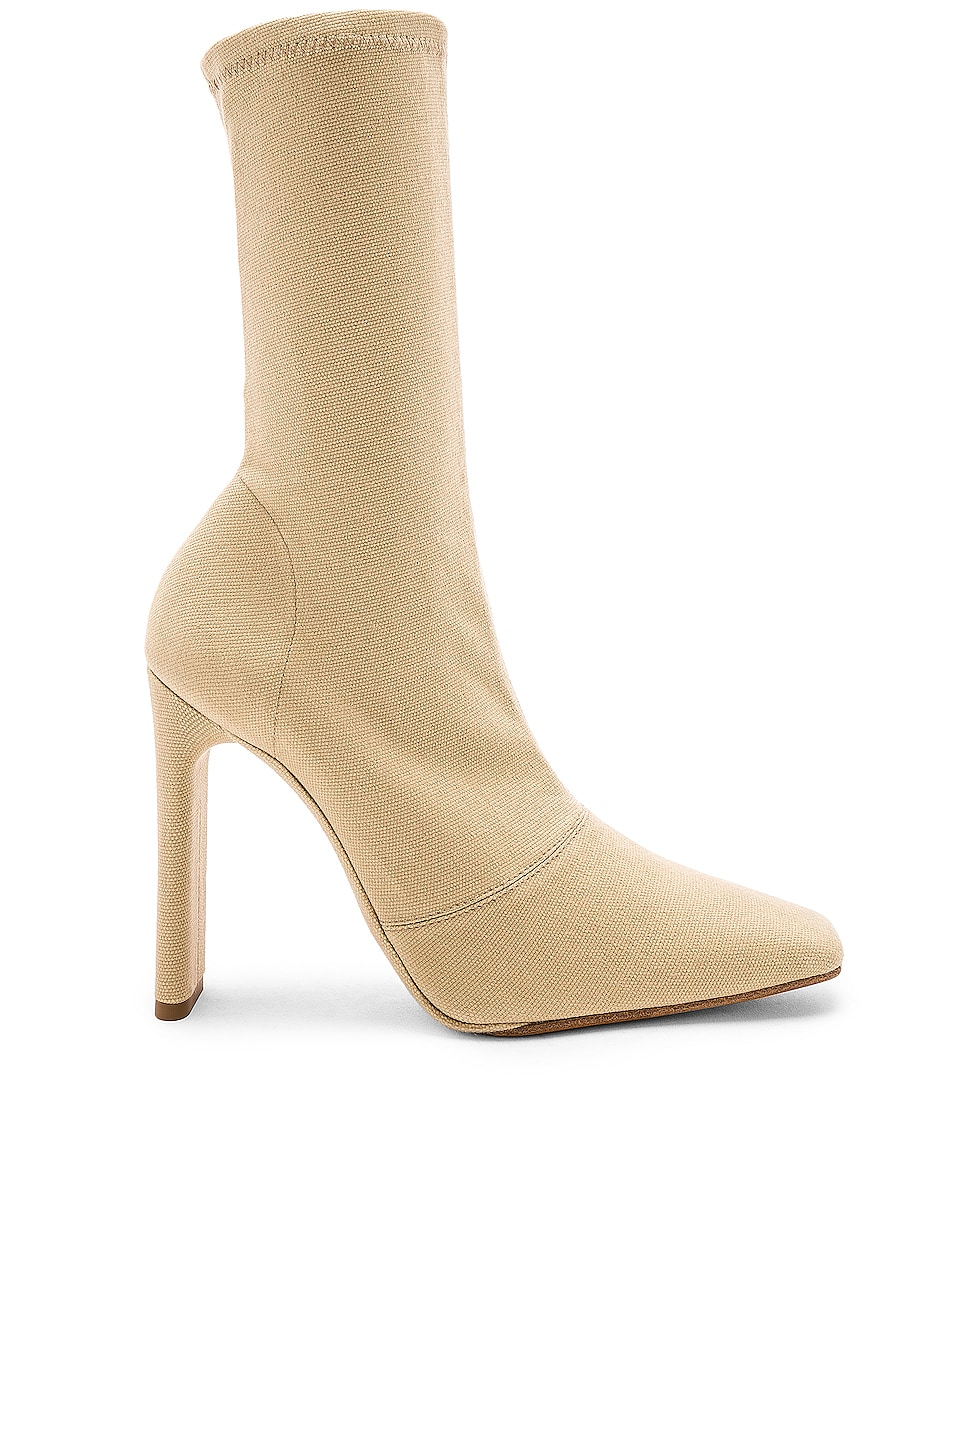 SEASON 7 Stretch Ankle Boot 110MM